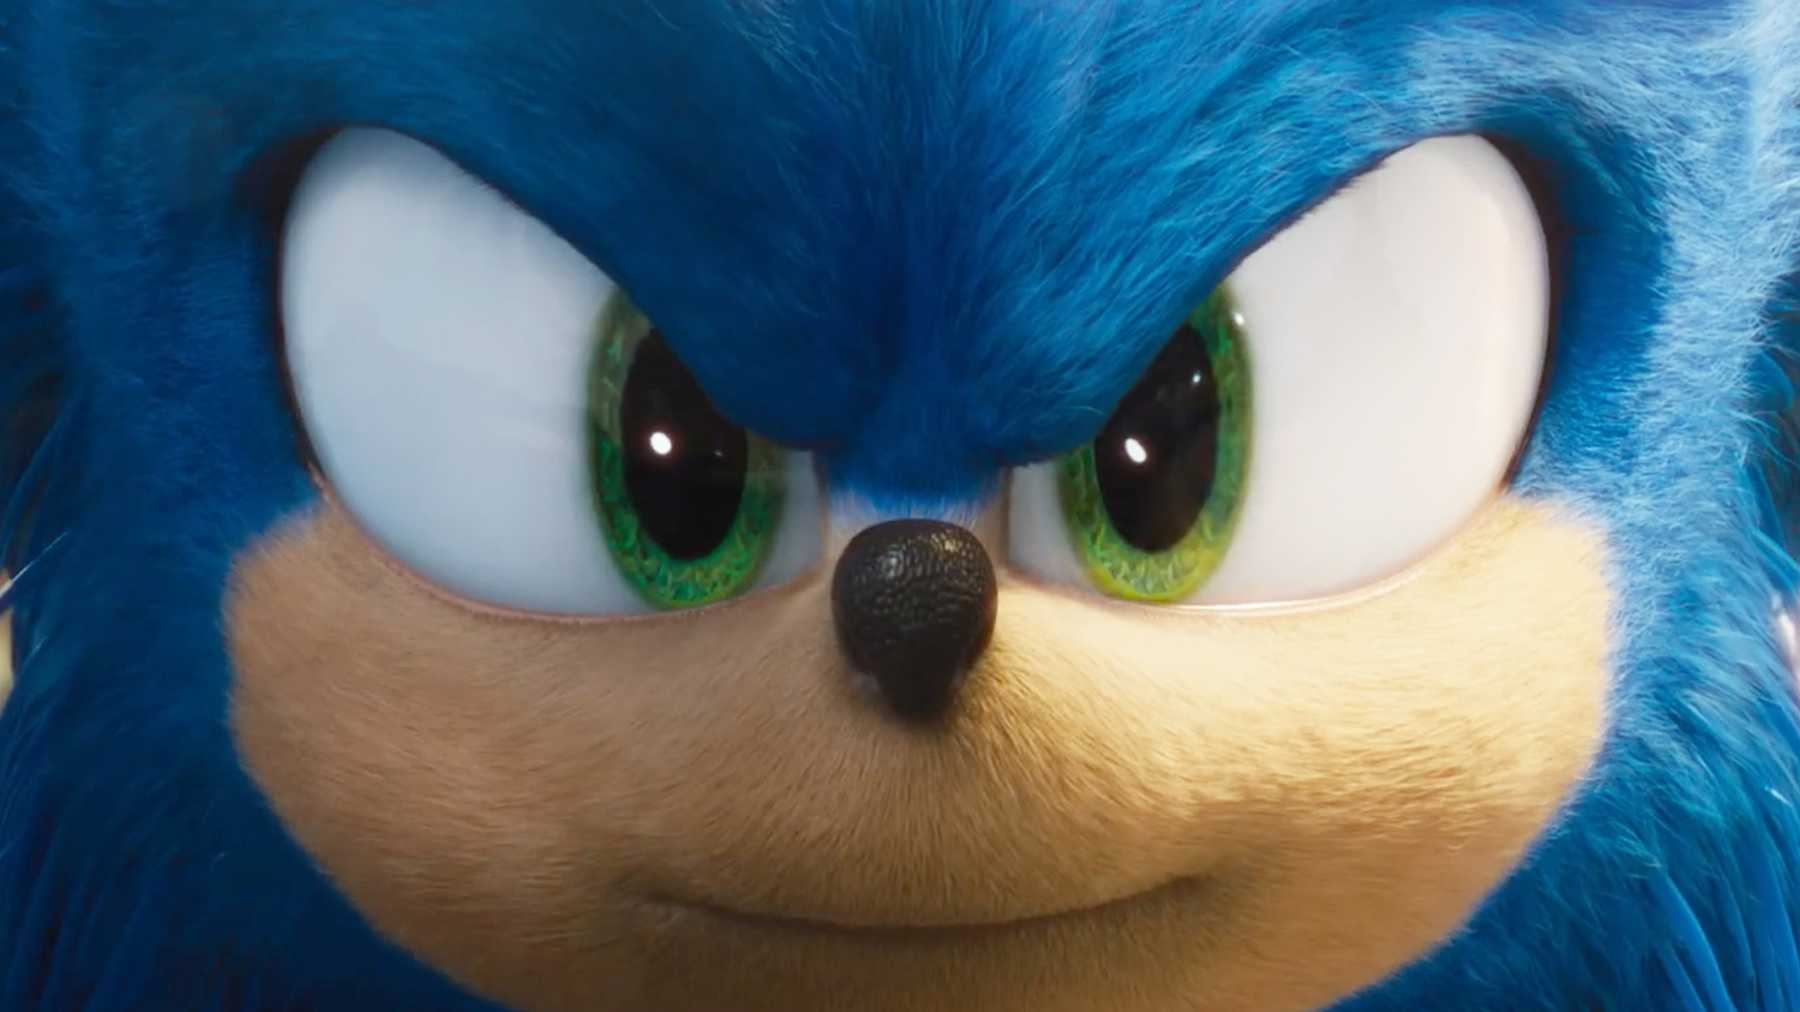 Sonic The Hedgehog Trailer Unveils New Look Sonic Design Movies Empire